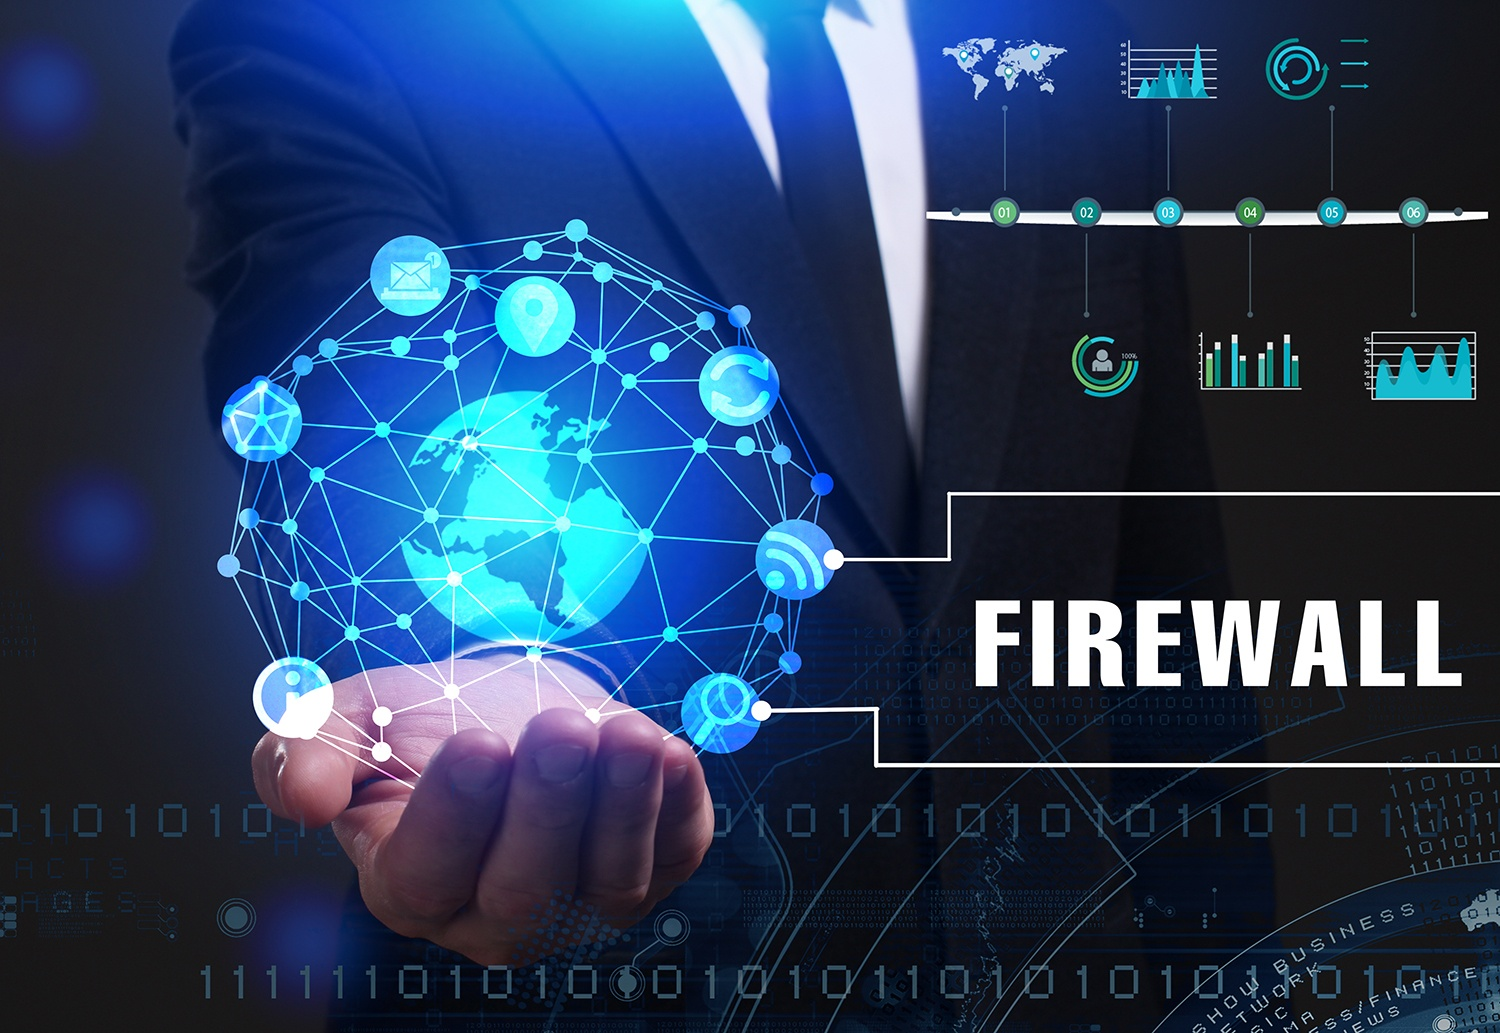 Tips For a Firewall to Work Optimally